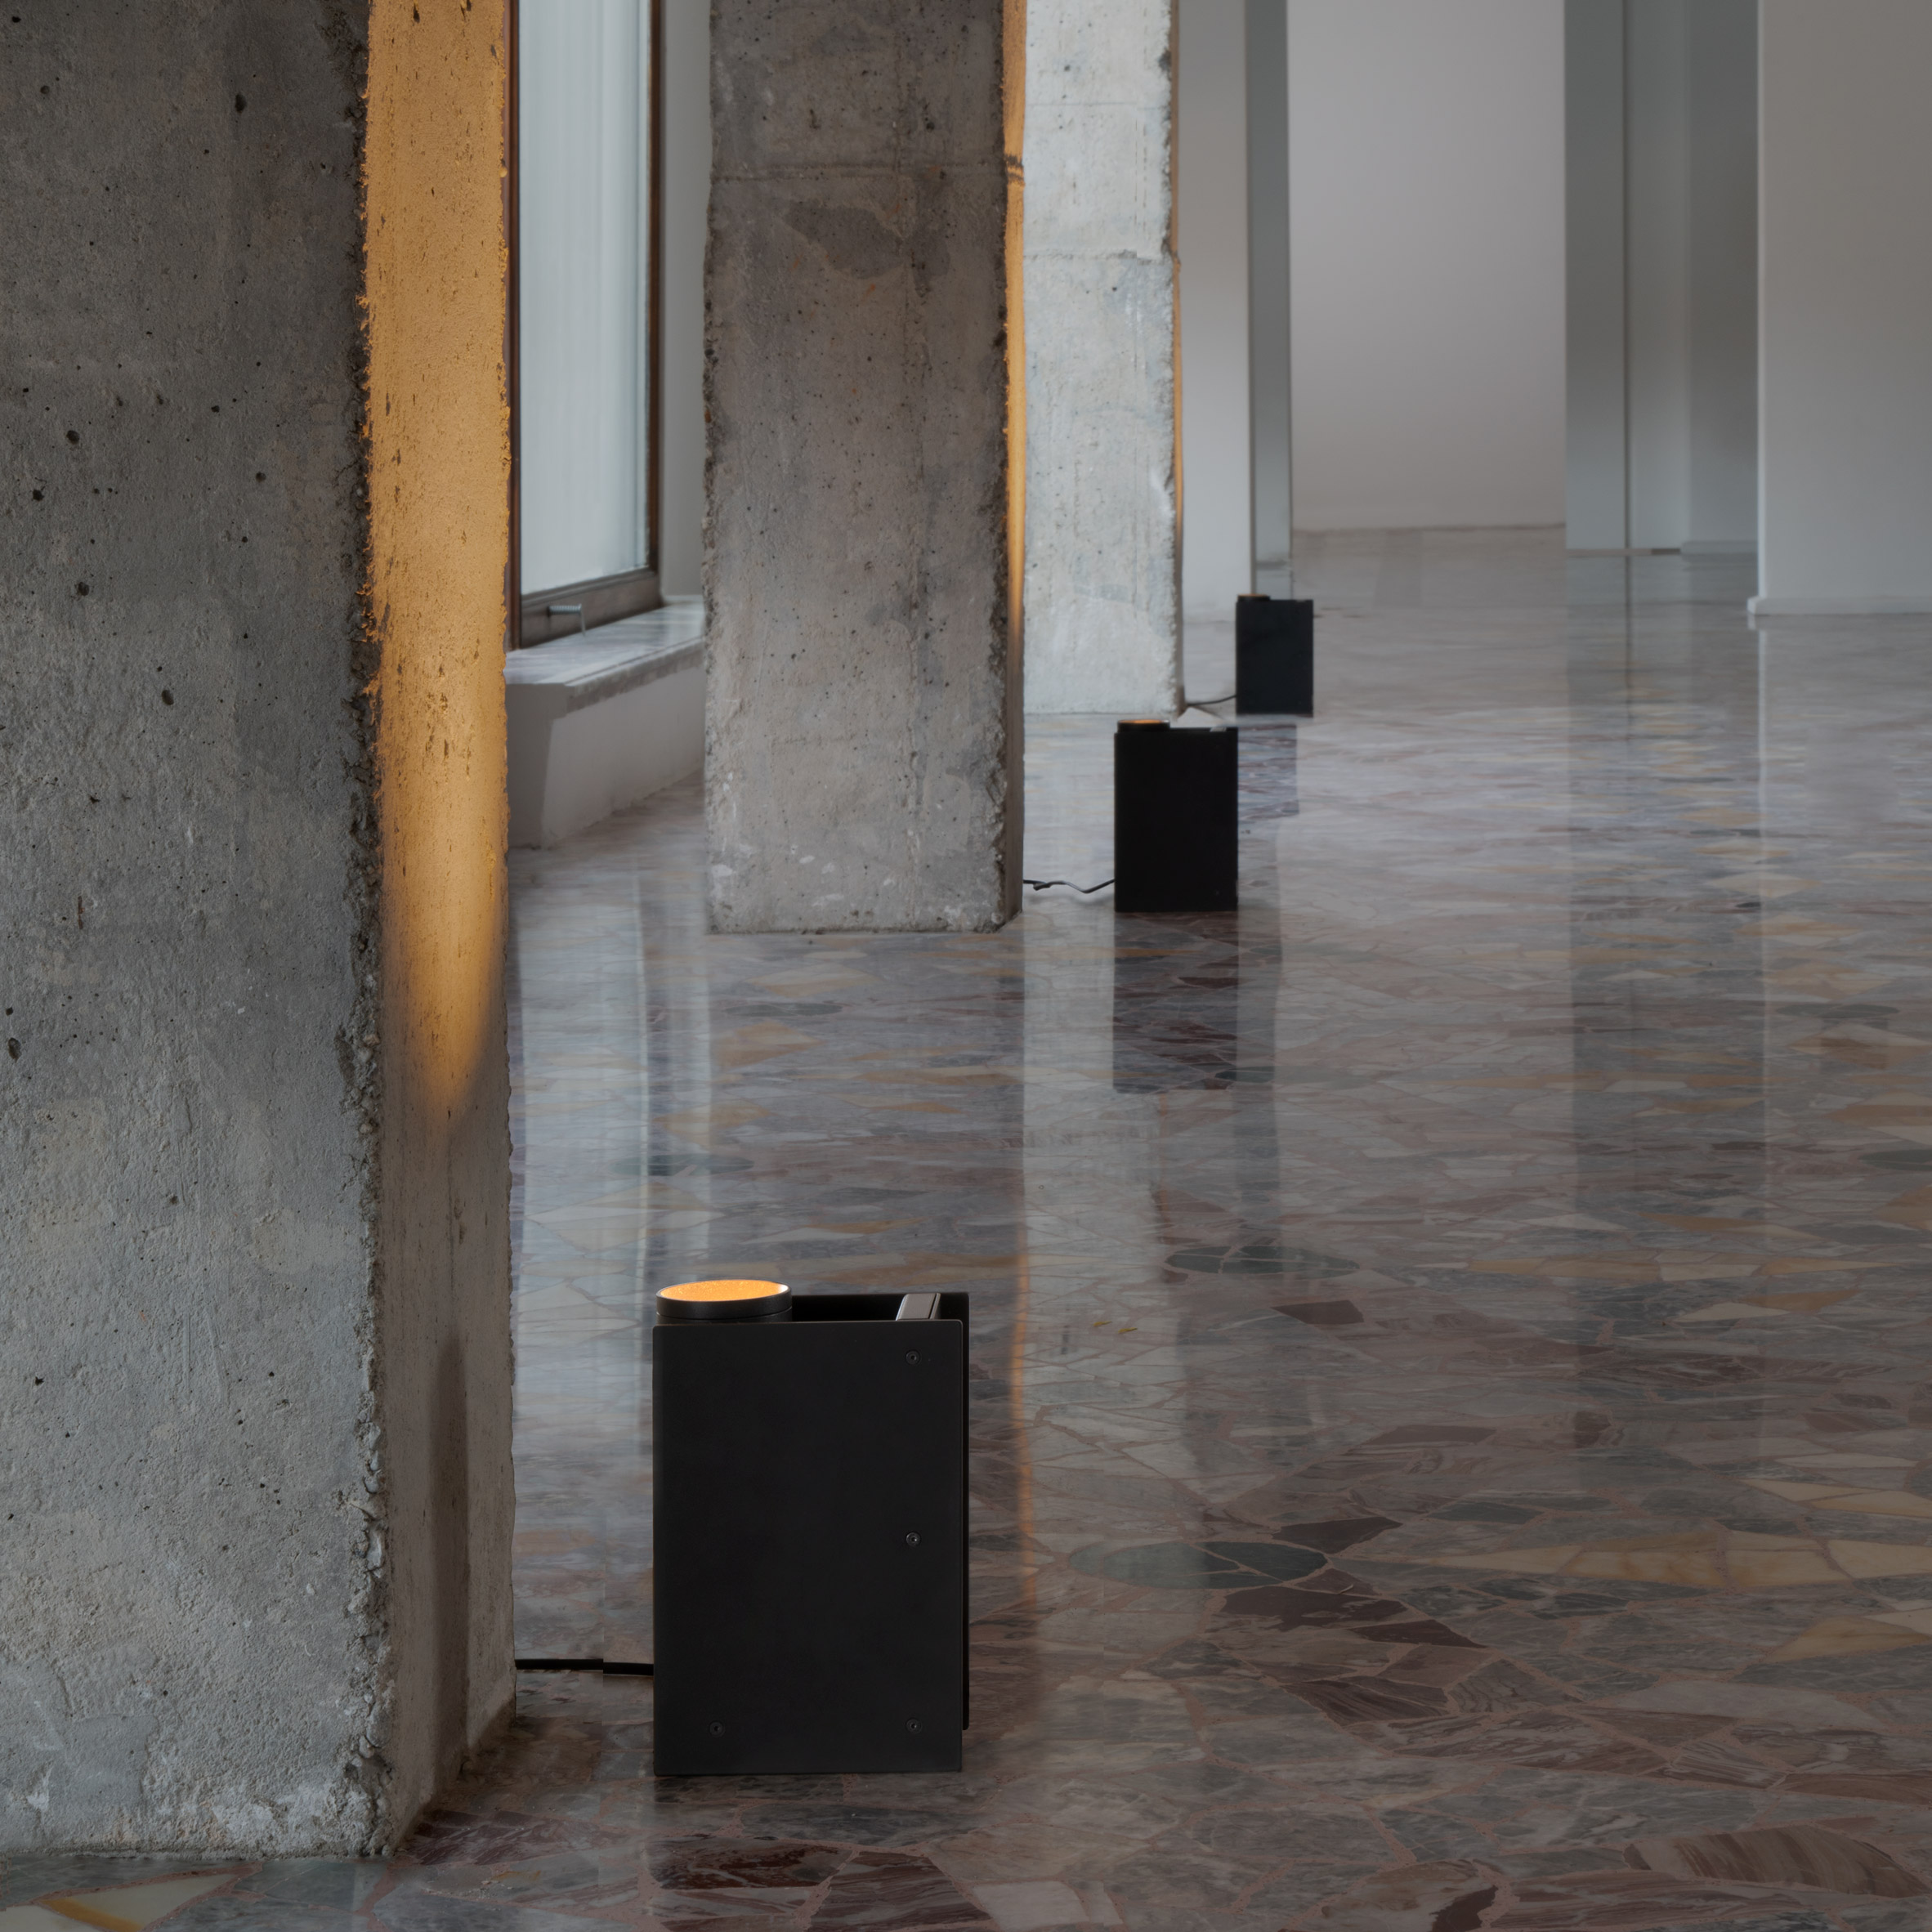 Plint light by Massimo Colagrande for Nemo Lighting